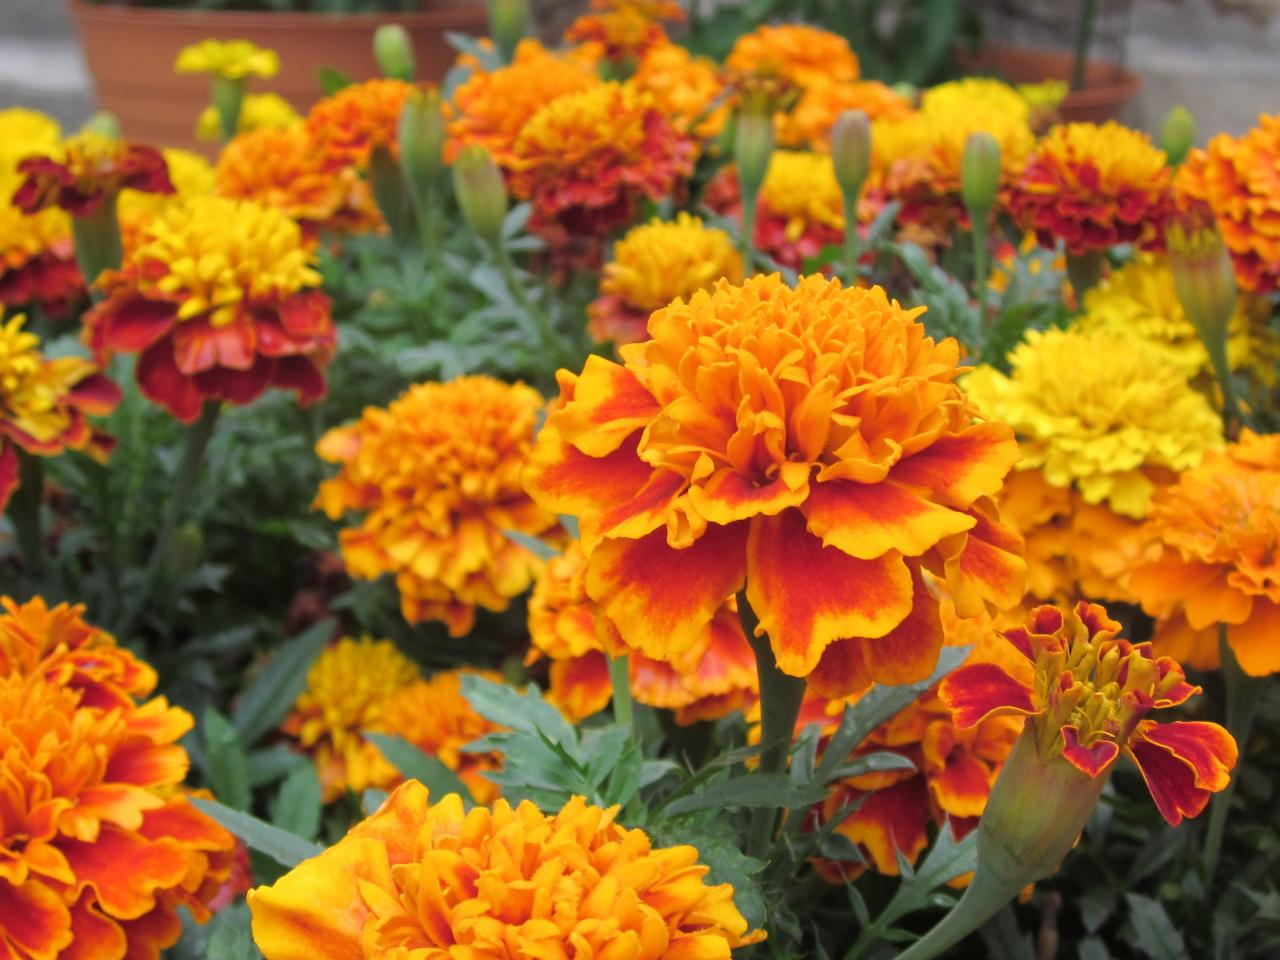 7 Ways To Use Marigold Flowers   DIY Network Blog  Made   Remade   DIY French Marigold Flowers